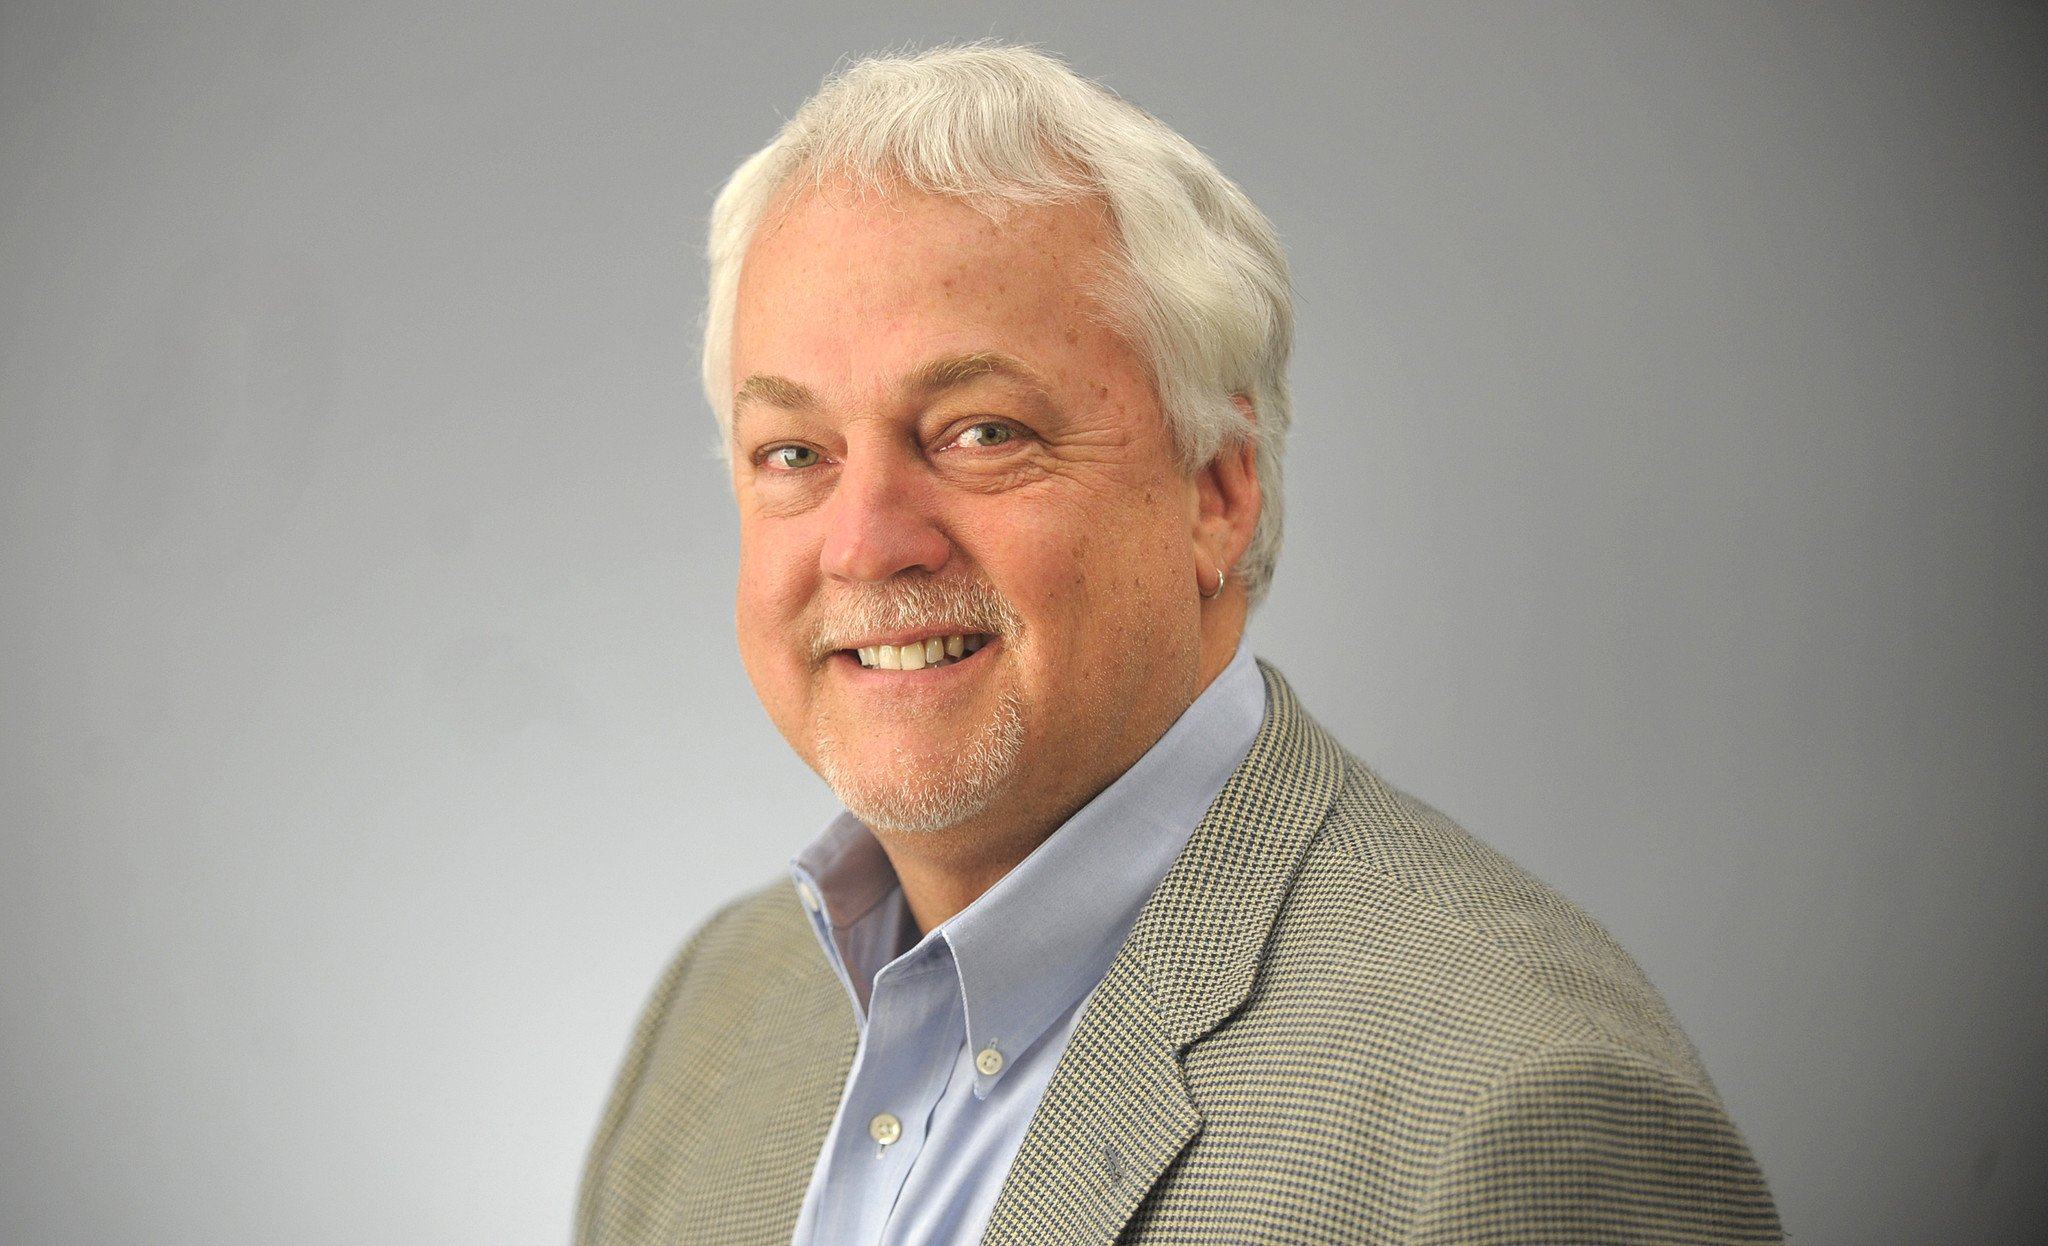 This image obtained from the Capital Gazette shows Capital Gazette Assistant Editor and Columnist Rob Hiaasen, one of the victims of the June 28, 2018, shooting at the newspaper in Annapolis, Maryland.